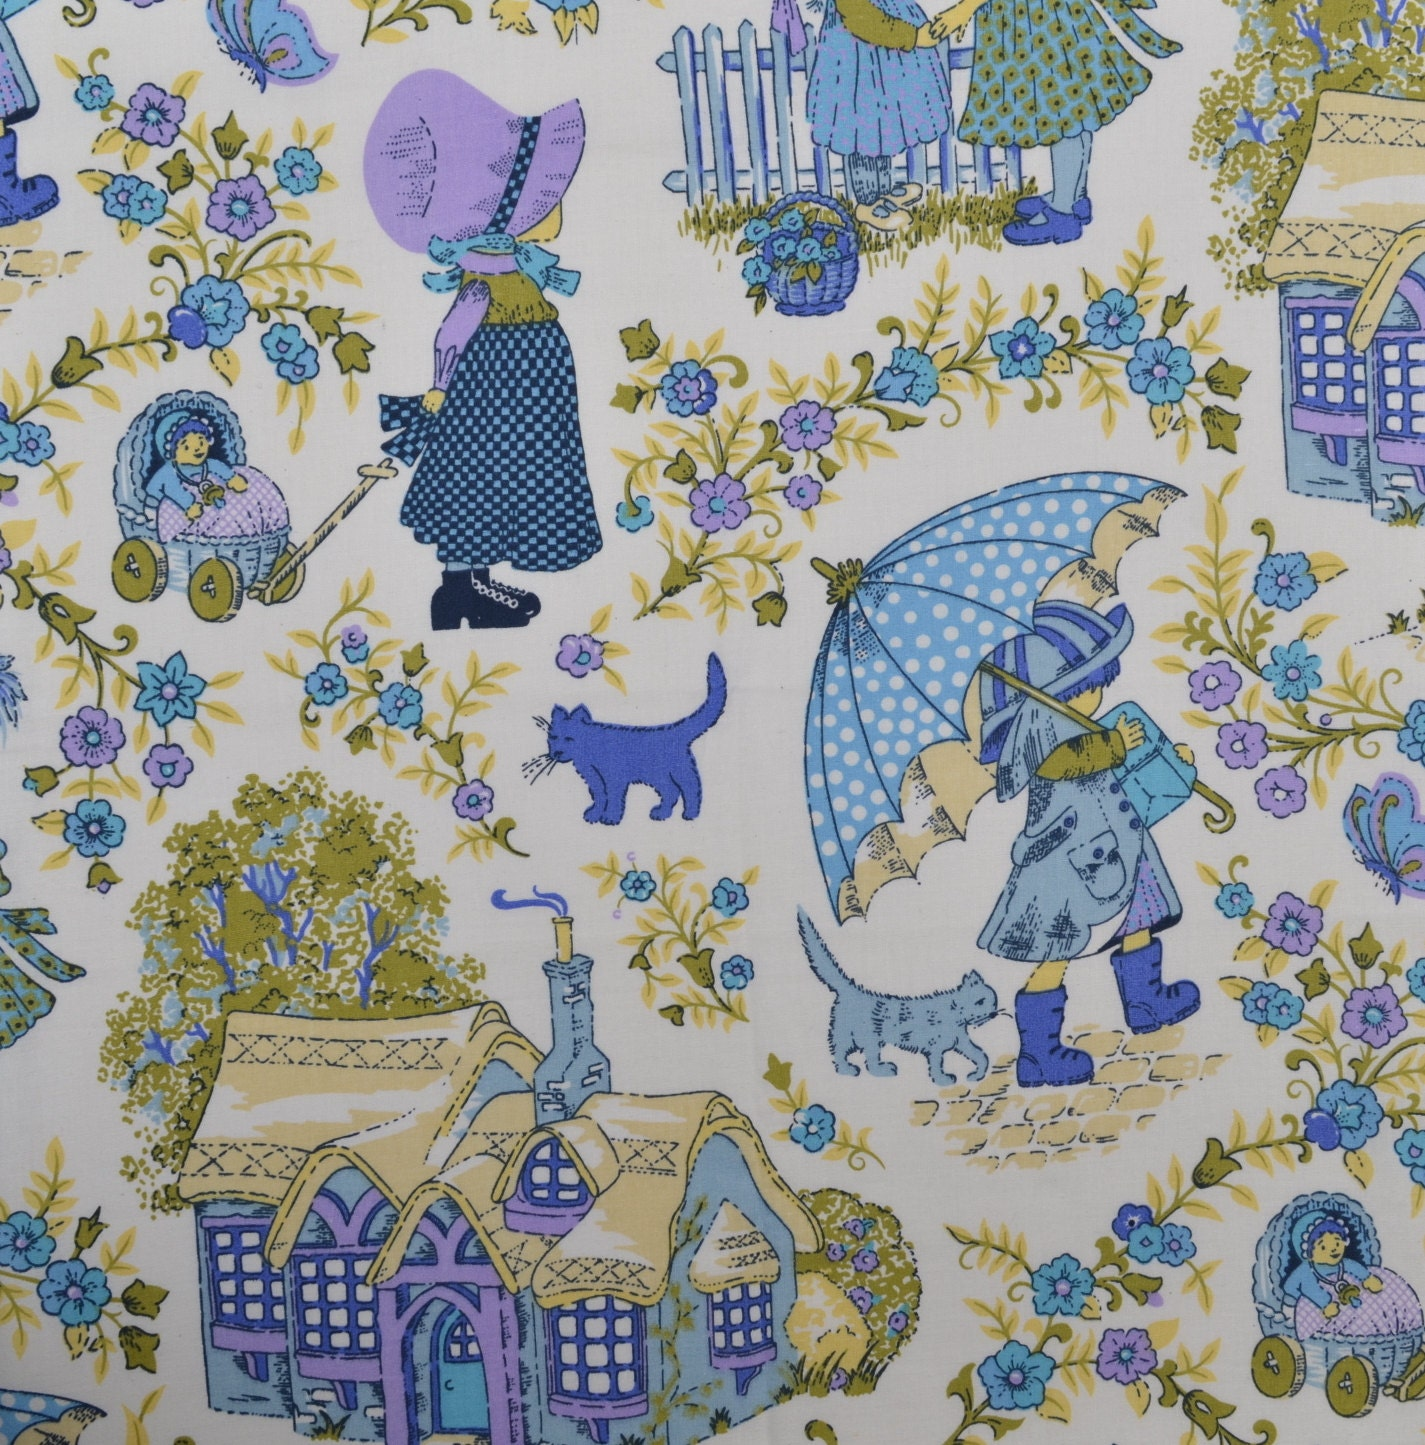 Vintage childrens fabric fq by patternlike on etsy for Vintage childrens fabric